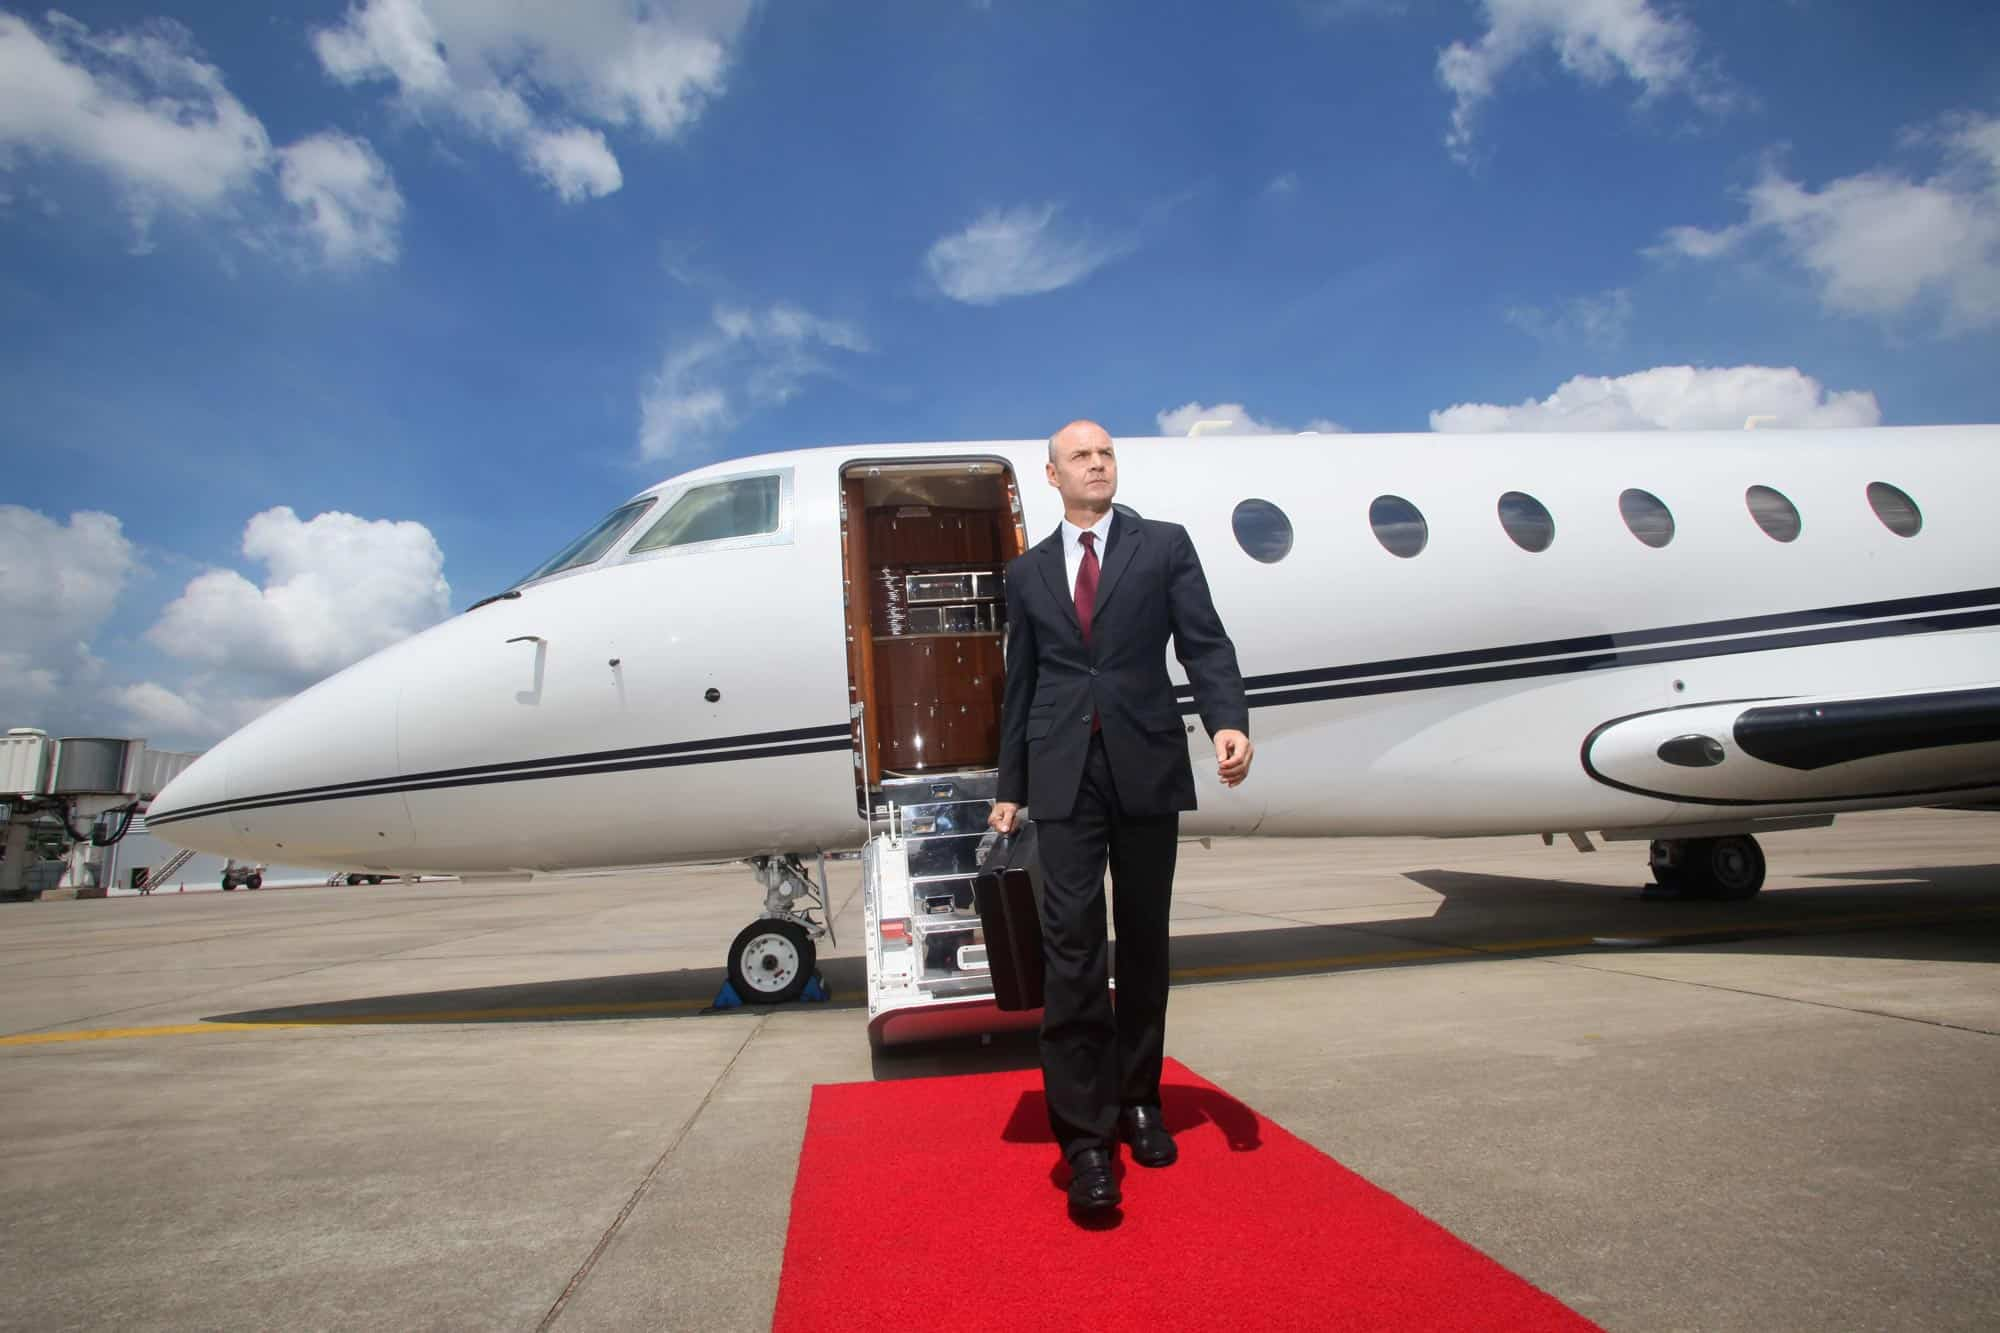 Business Executive walking from a Private Jet